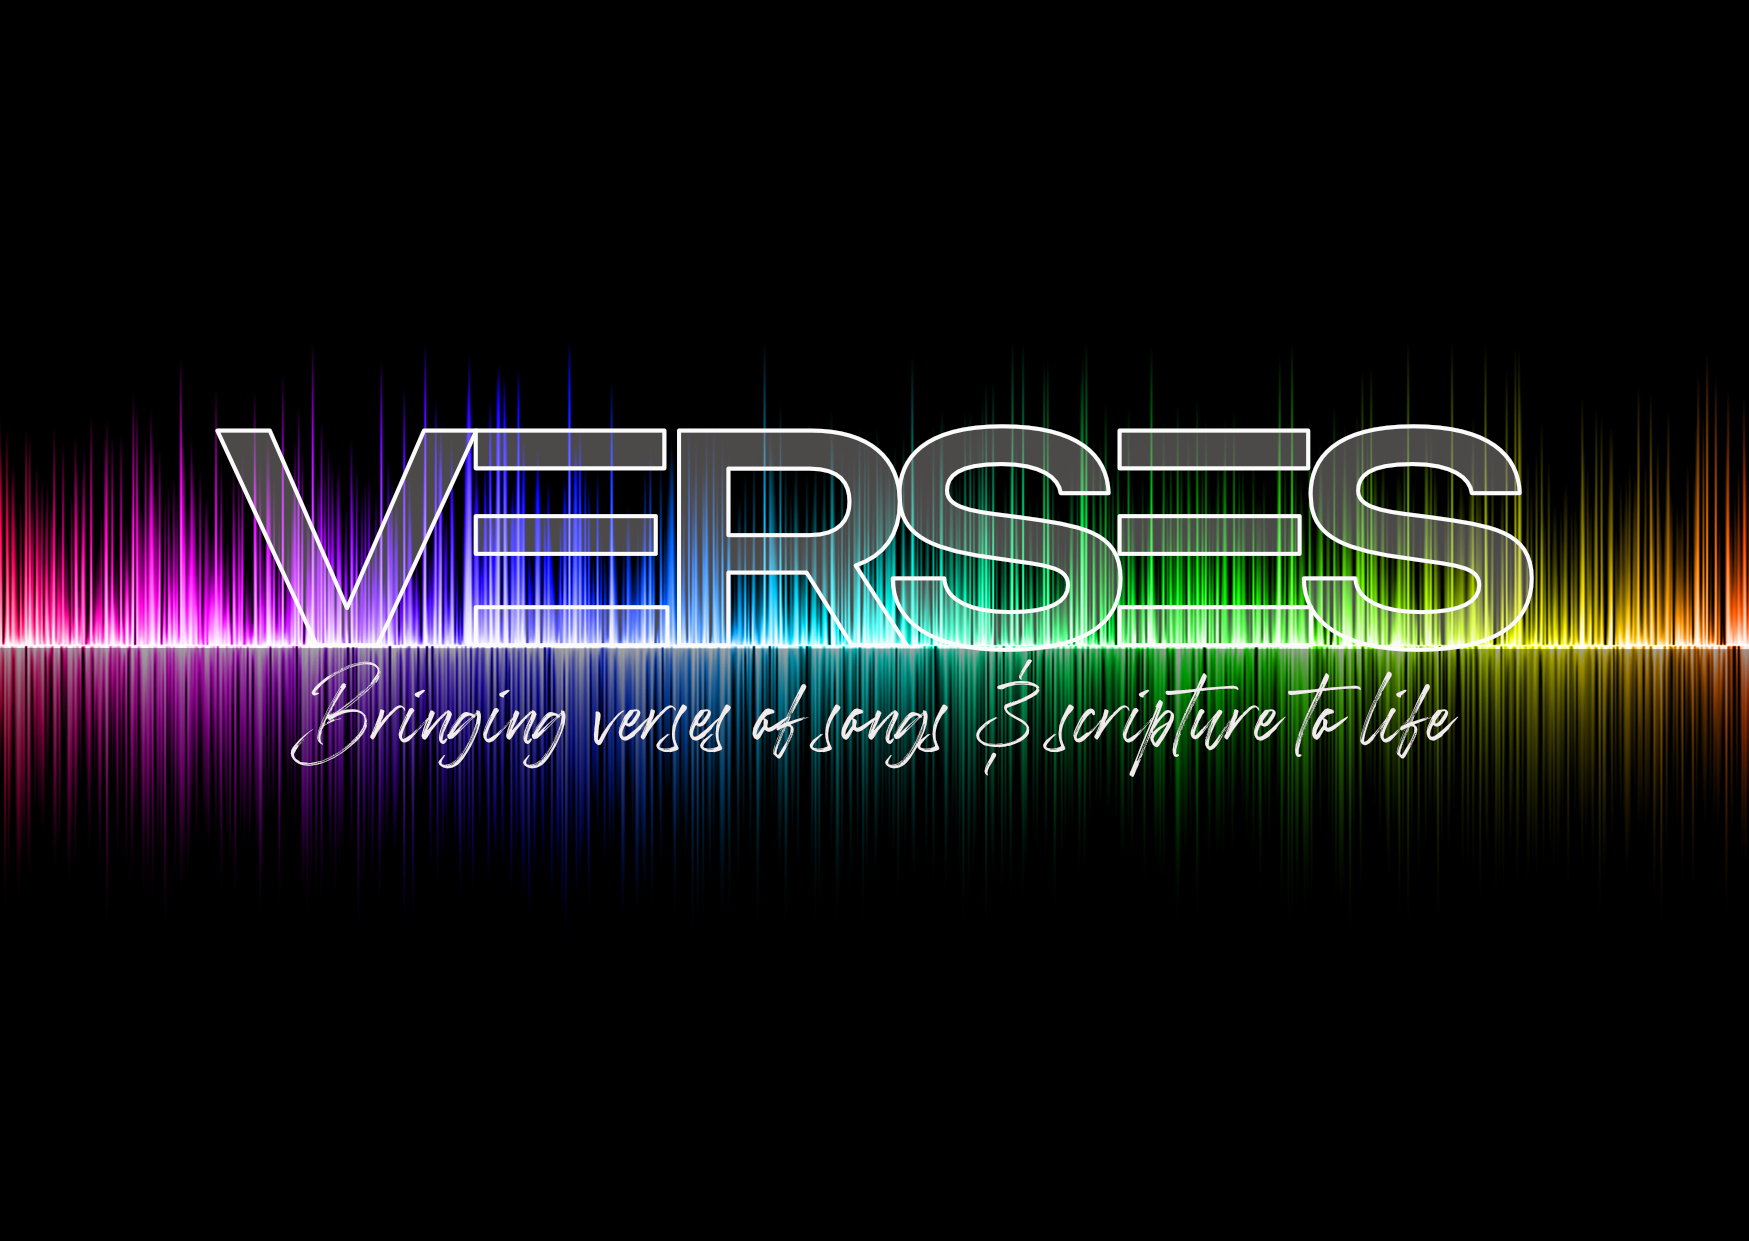 Verses. Bringing verses of songs and scripture to life!